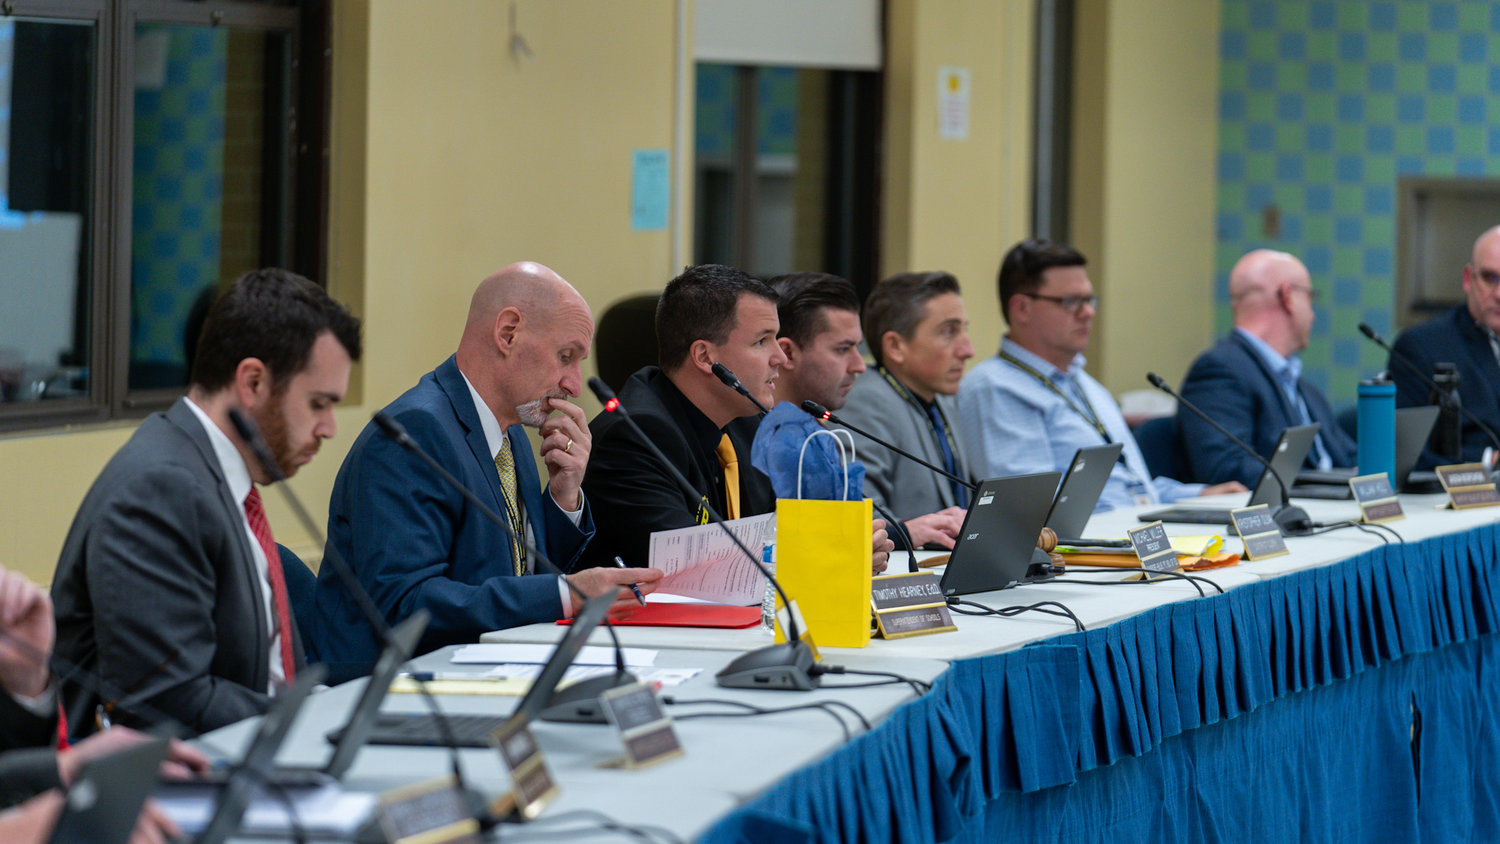 Board members were united in stalling the grade clustering reconfiguration that faced great resistance from the community in November.